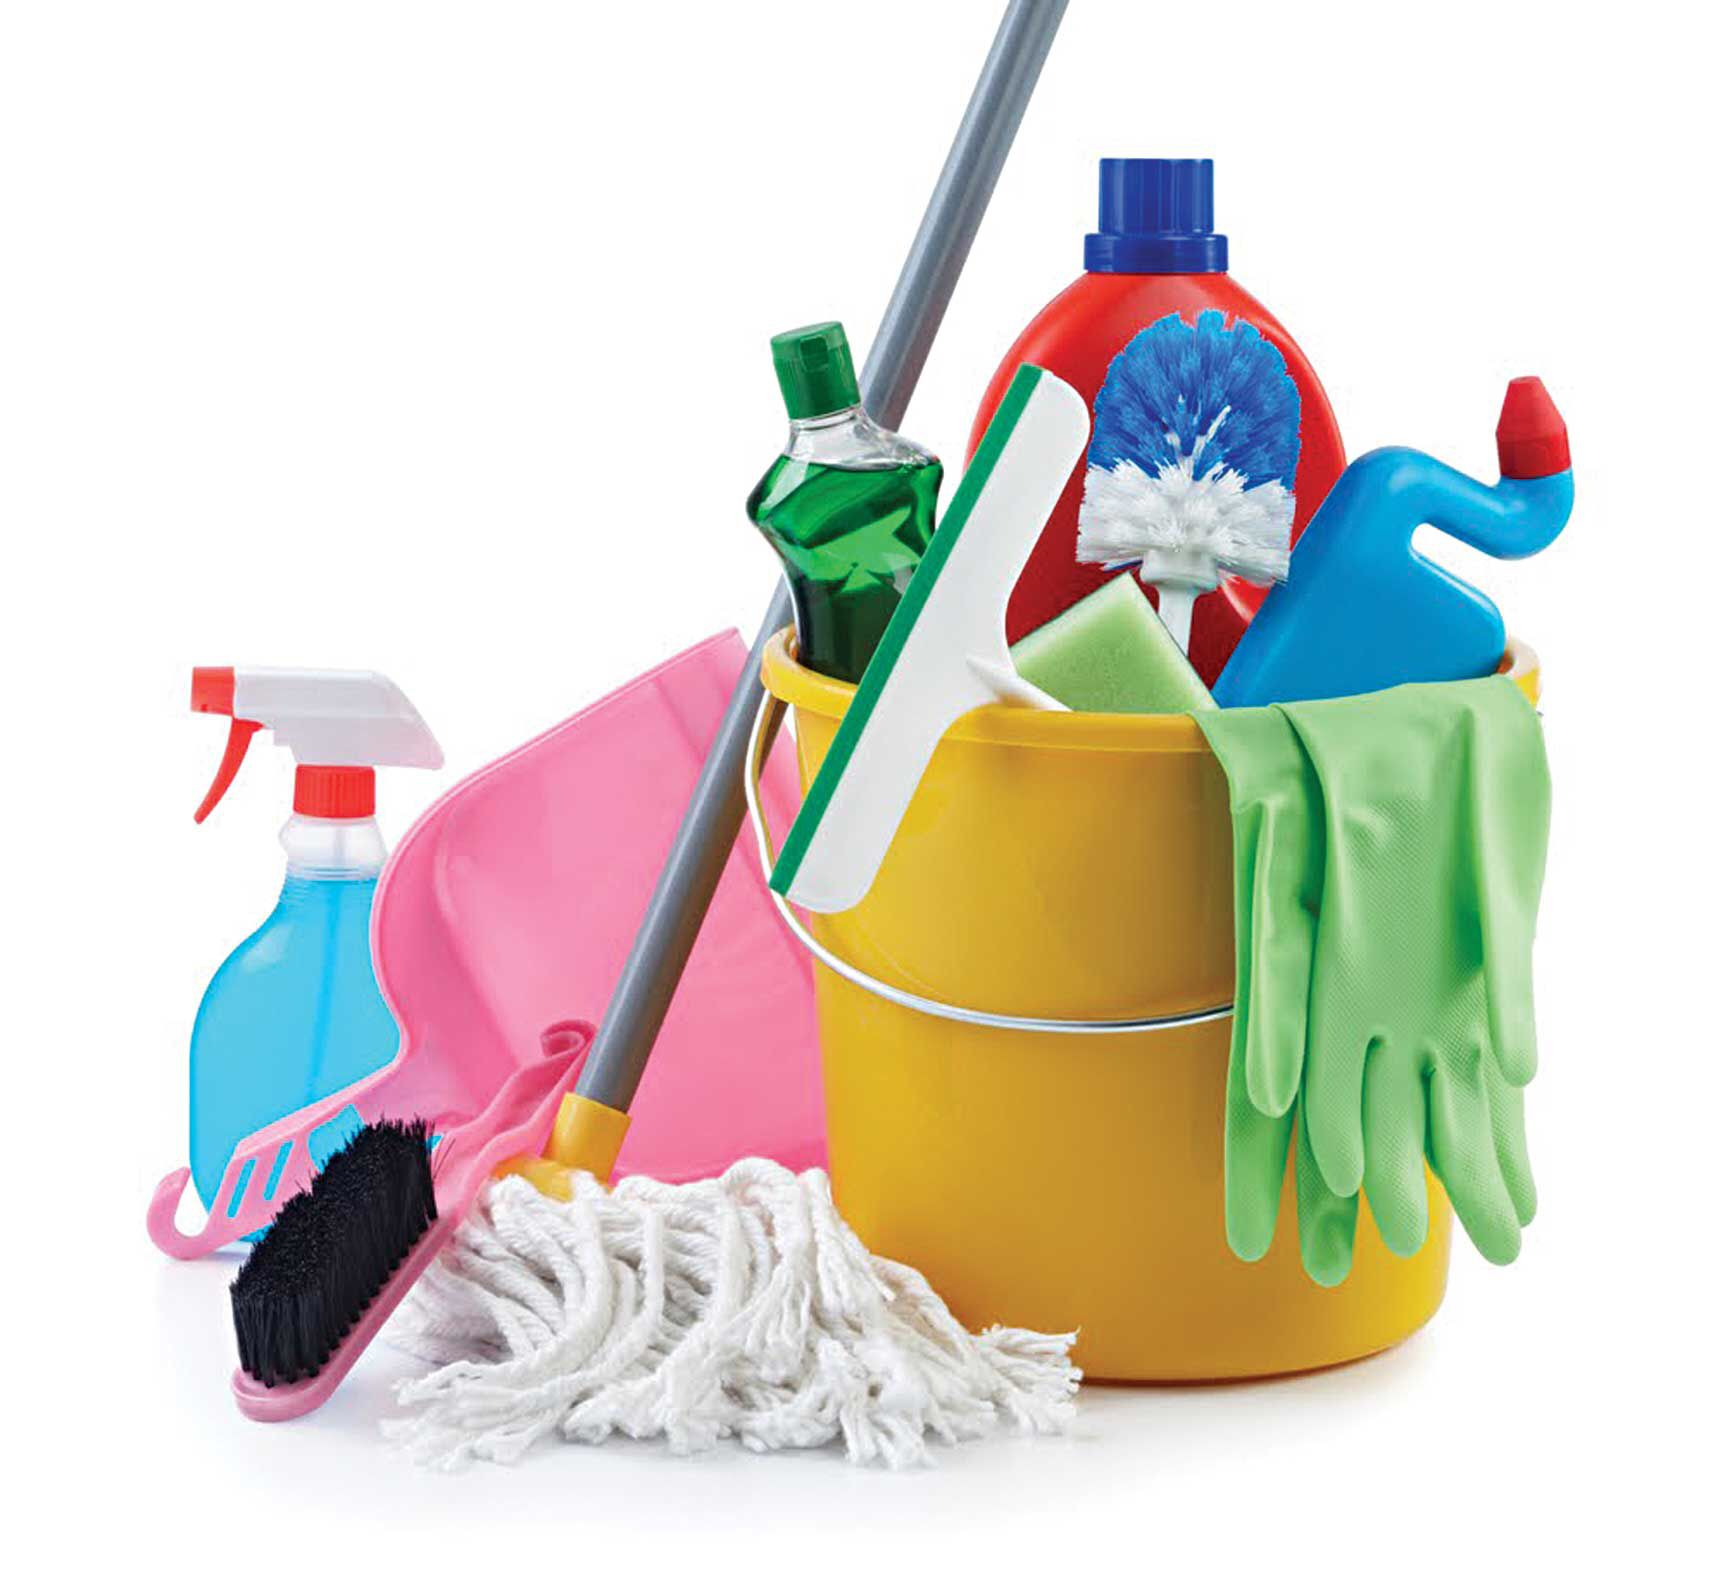 Cleaning Tools and Equipment   Professional Cleaning Tools